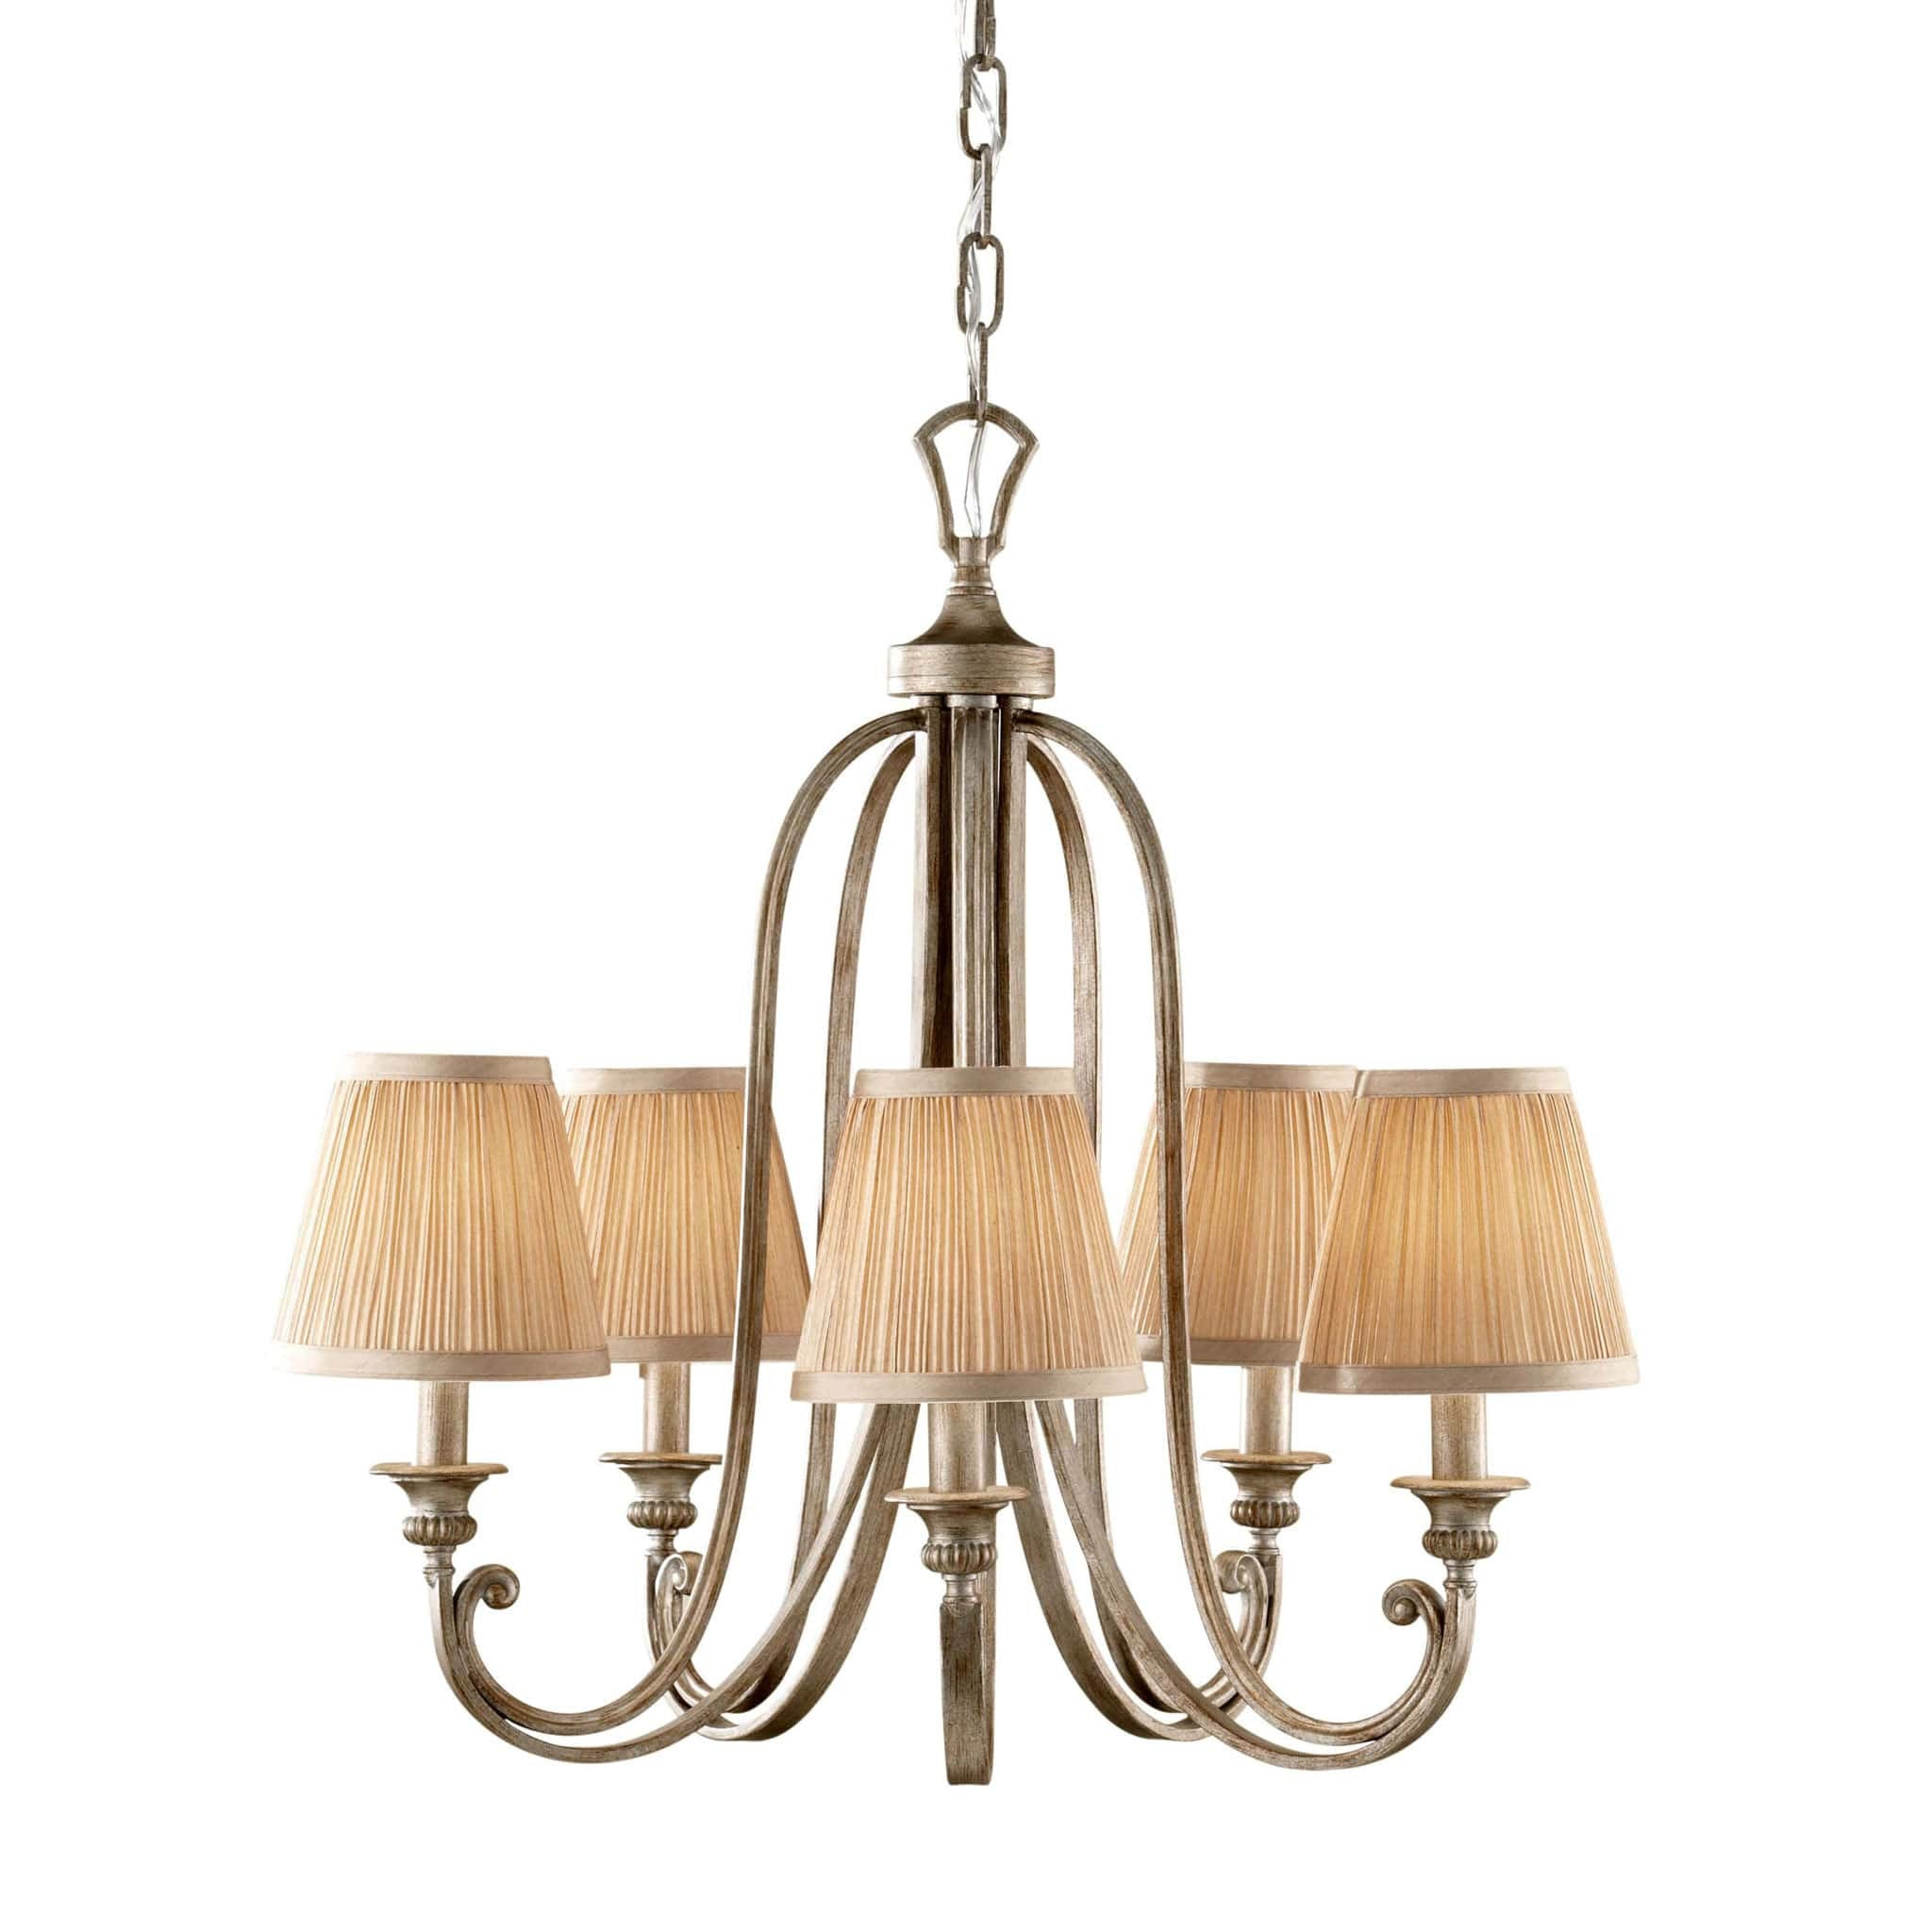 Feiss Abbey 5 Light Silver Sand Shade Chandelier FE/ABBEY5 ...